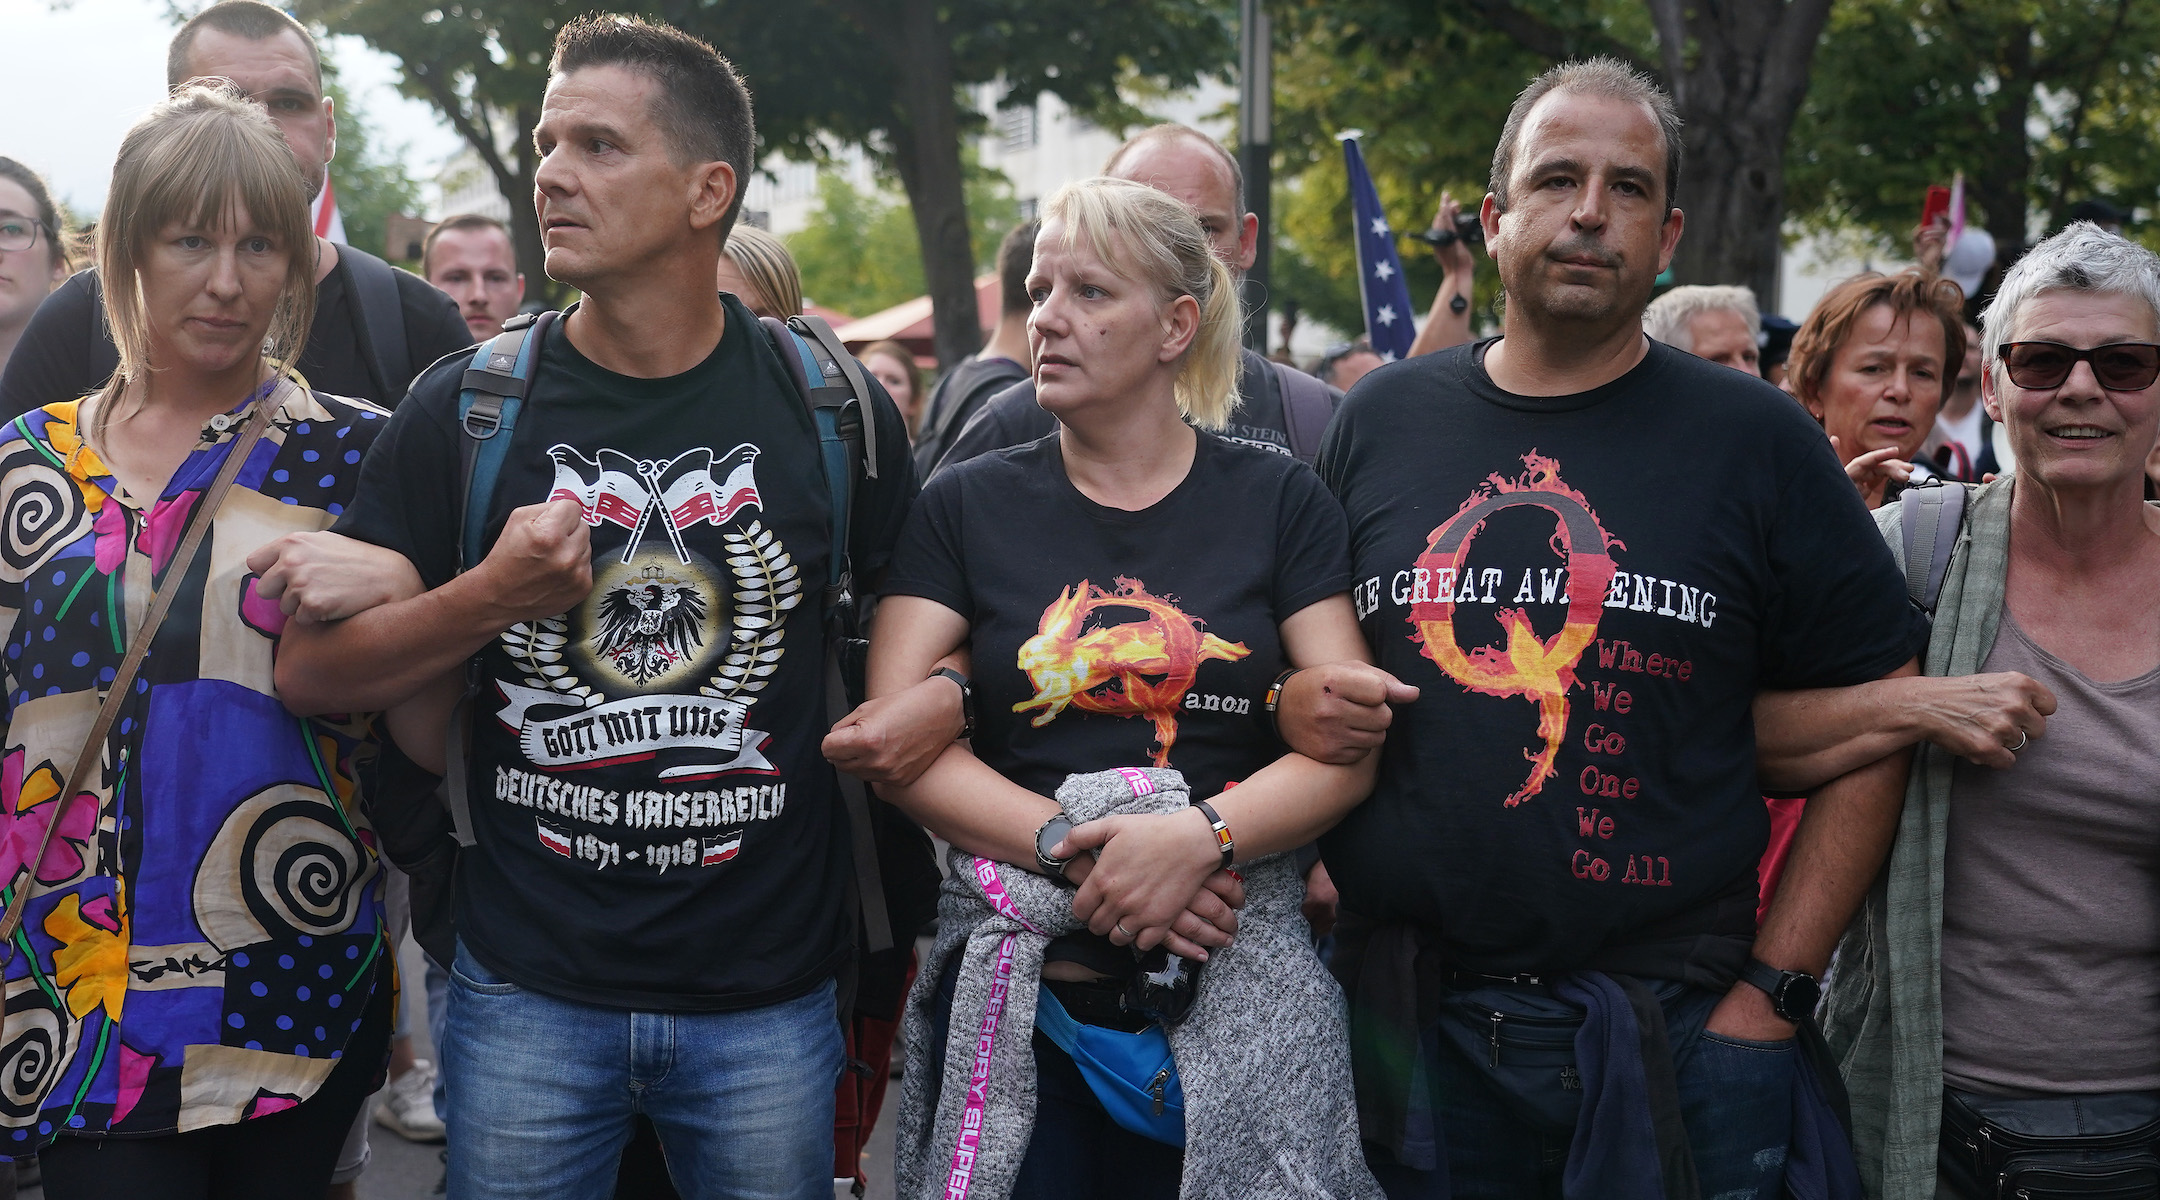 A group of Germans who follow the QAnon conspiracy theory protest in Berlin, Aug. 29, 2020, the same day that a group of German extremists inspired by QAnon stormed the country's parliament. (Photo/JTA-Sean Gallup-Getty Images)